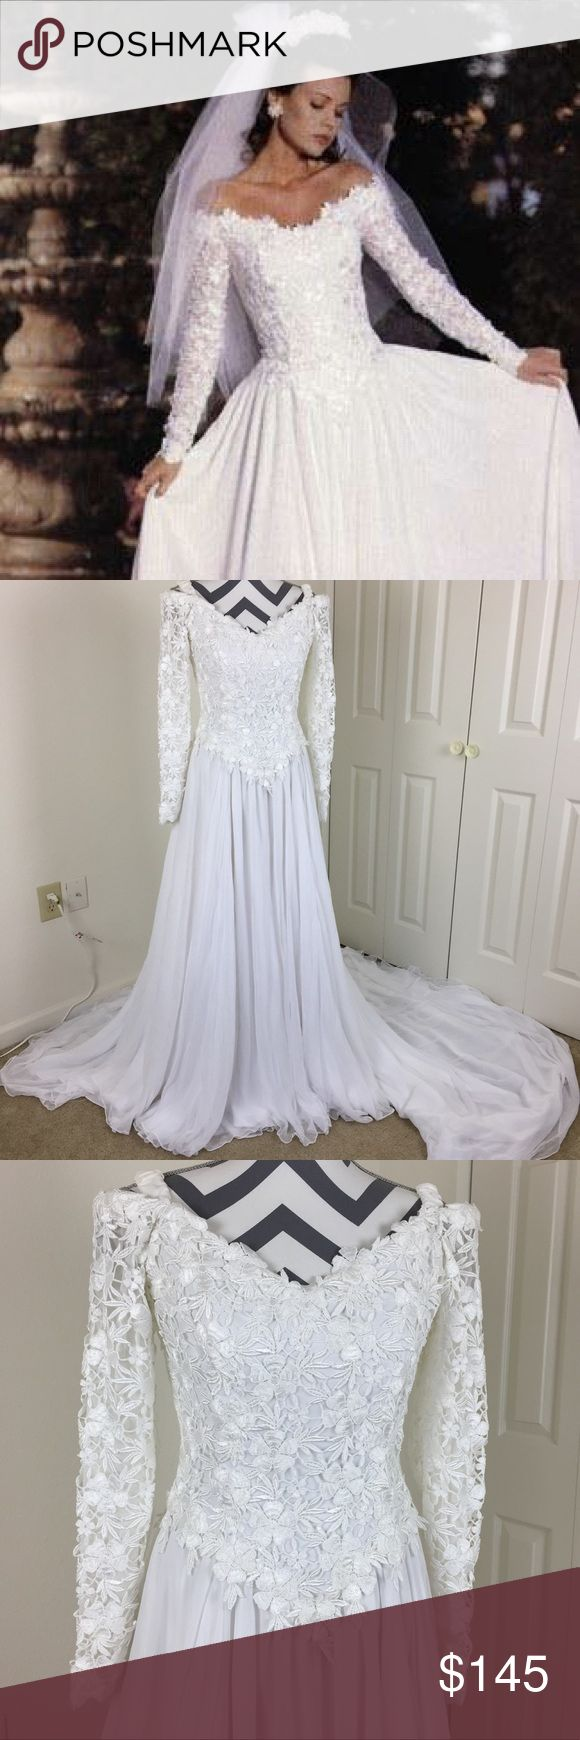 Vintage 90's Demetrios Wedding Dress Size 10 Gorgeous vintage off the shoulder Demetrios wedding dress with stunning lace detail on the bodice. Zips up the back. Classic style from the 90's! Buttons at the sleeves. (One of the buttons came off but will be included so it can be reattached) Size 10. Demetrios Dresses Wedding